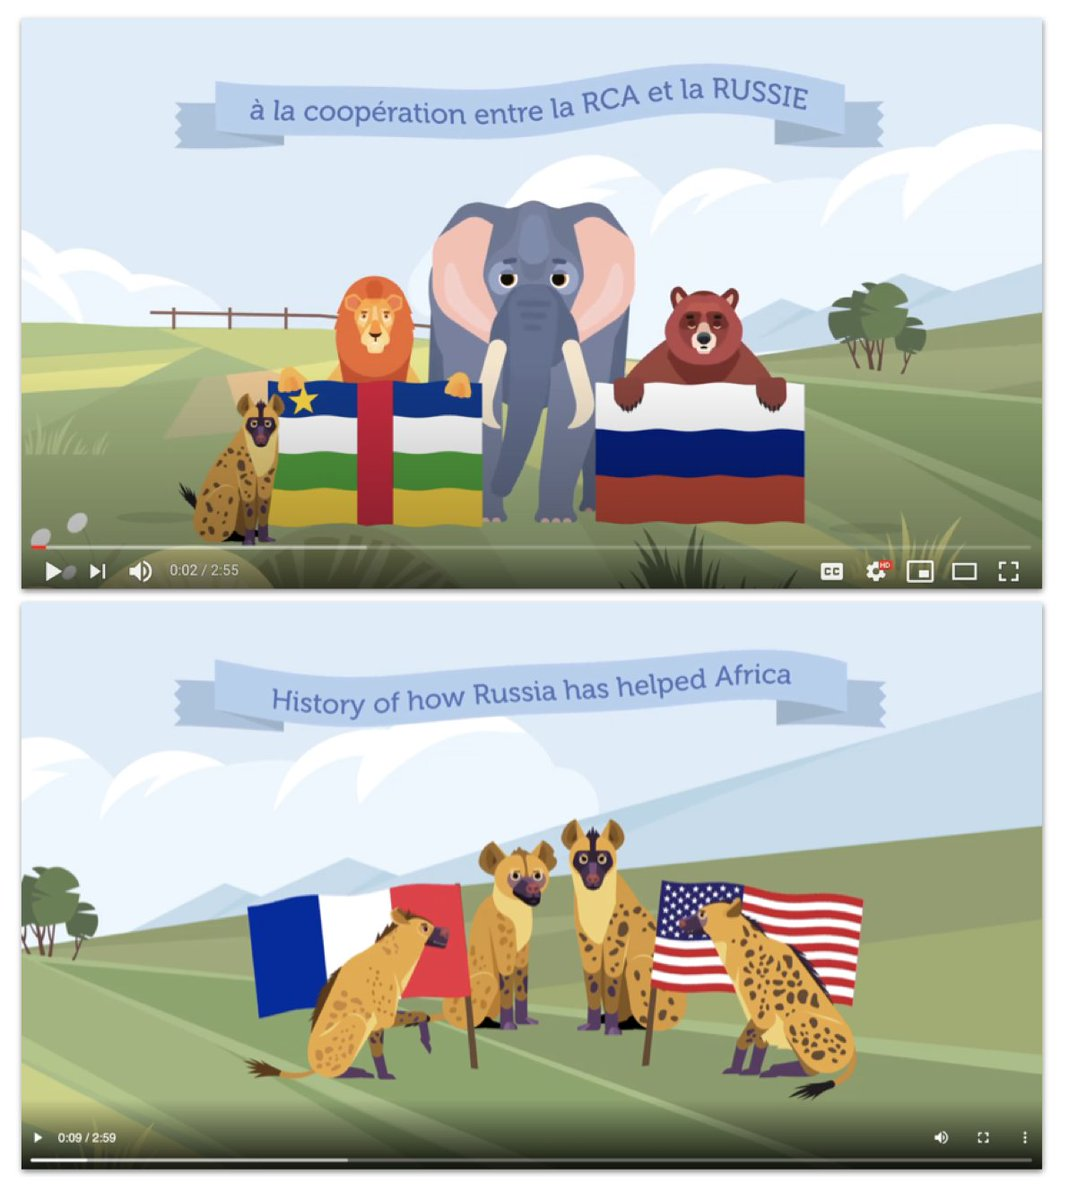 This fabulous cartoon, about a bear saving a lion from French/U.S. hyenas, was sponsored by Prigozhin firm Lobaye Invest at the time. (h/t  @dionnesearcey, who wrote it up for  @nytimes in September 2019) Troll assets boosted it.